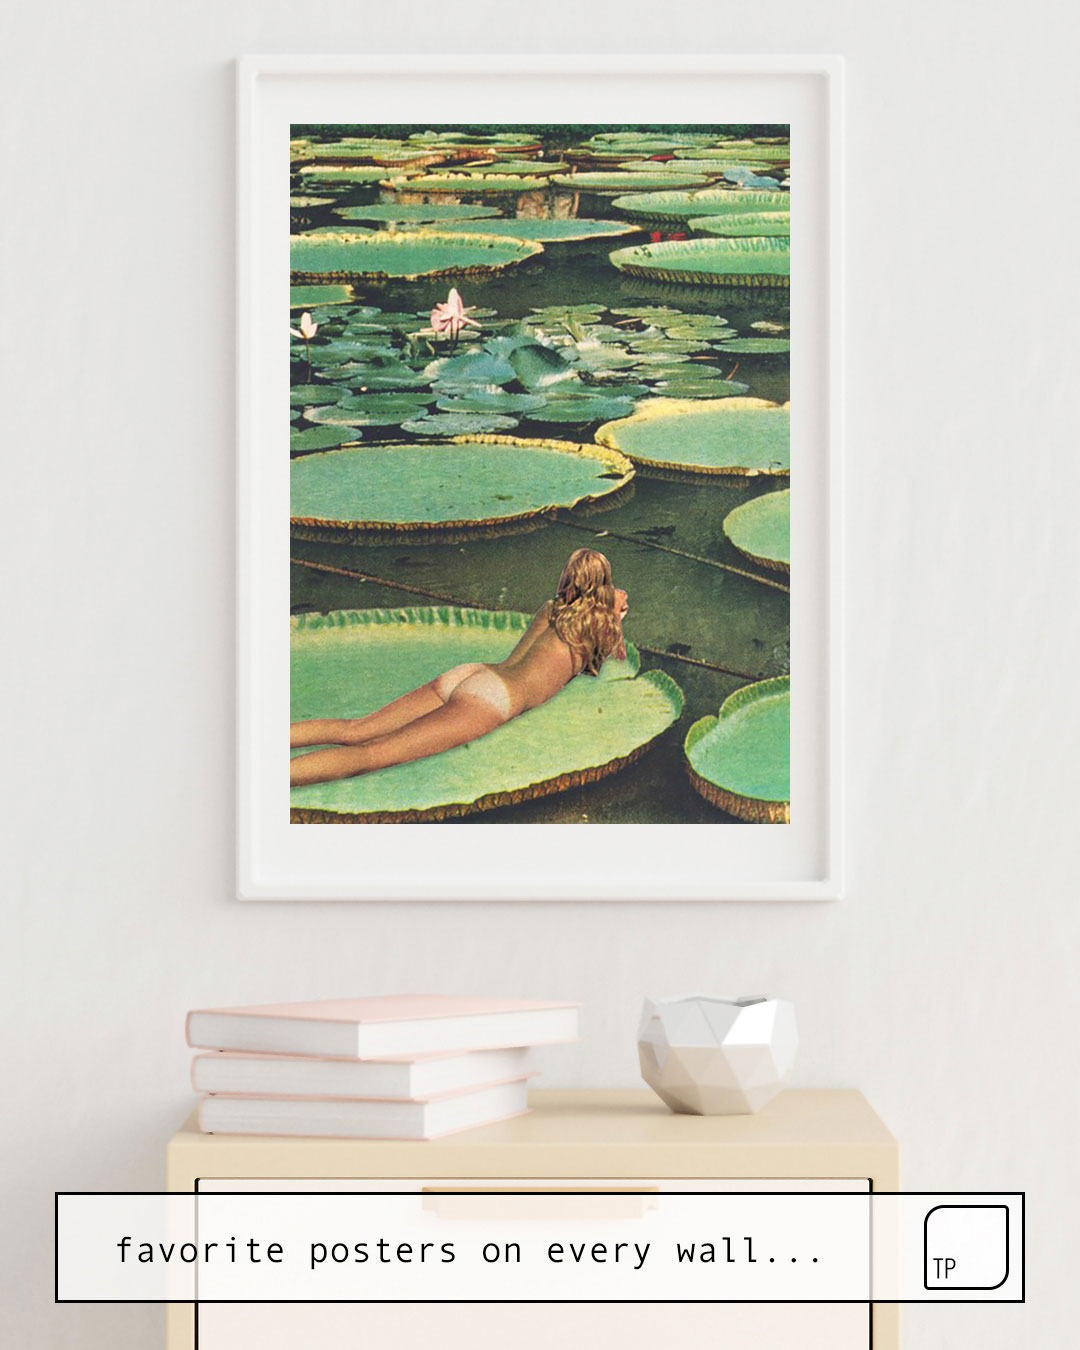 The photo shows an example of furnishing with the motif LILY POND LANE by Beth Hoeckel as mural